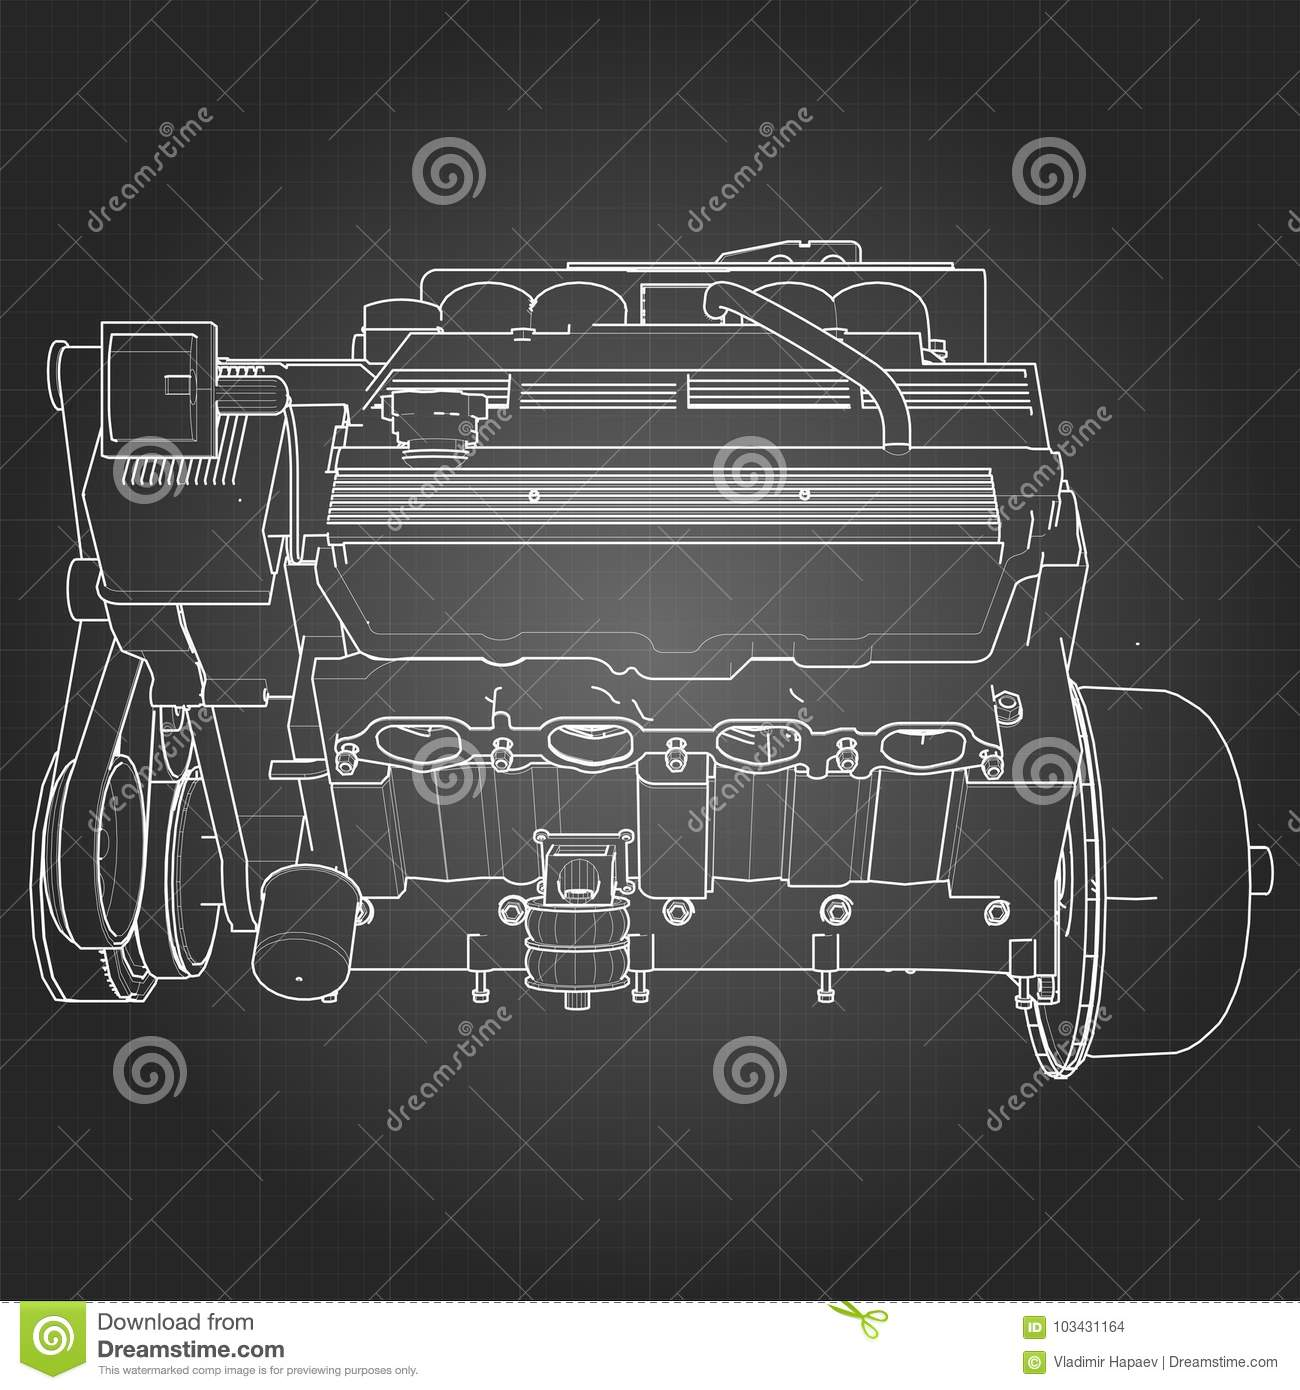 hight resolution of powerful v8 car engine the engine is drawn with white lines on a black sheet